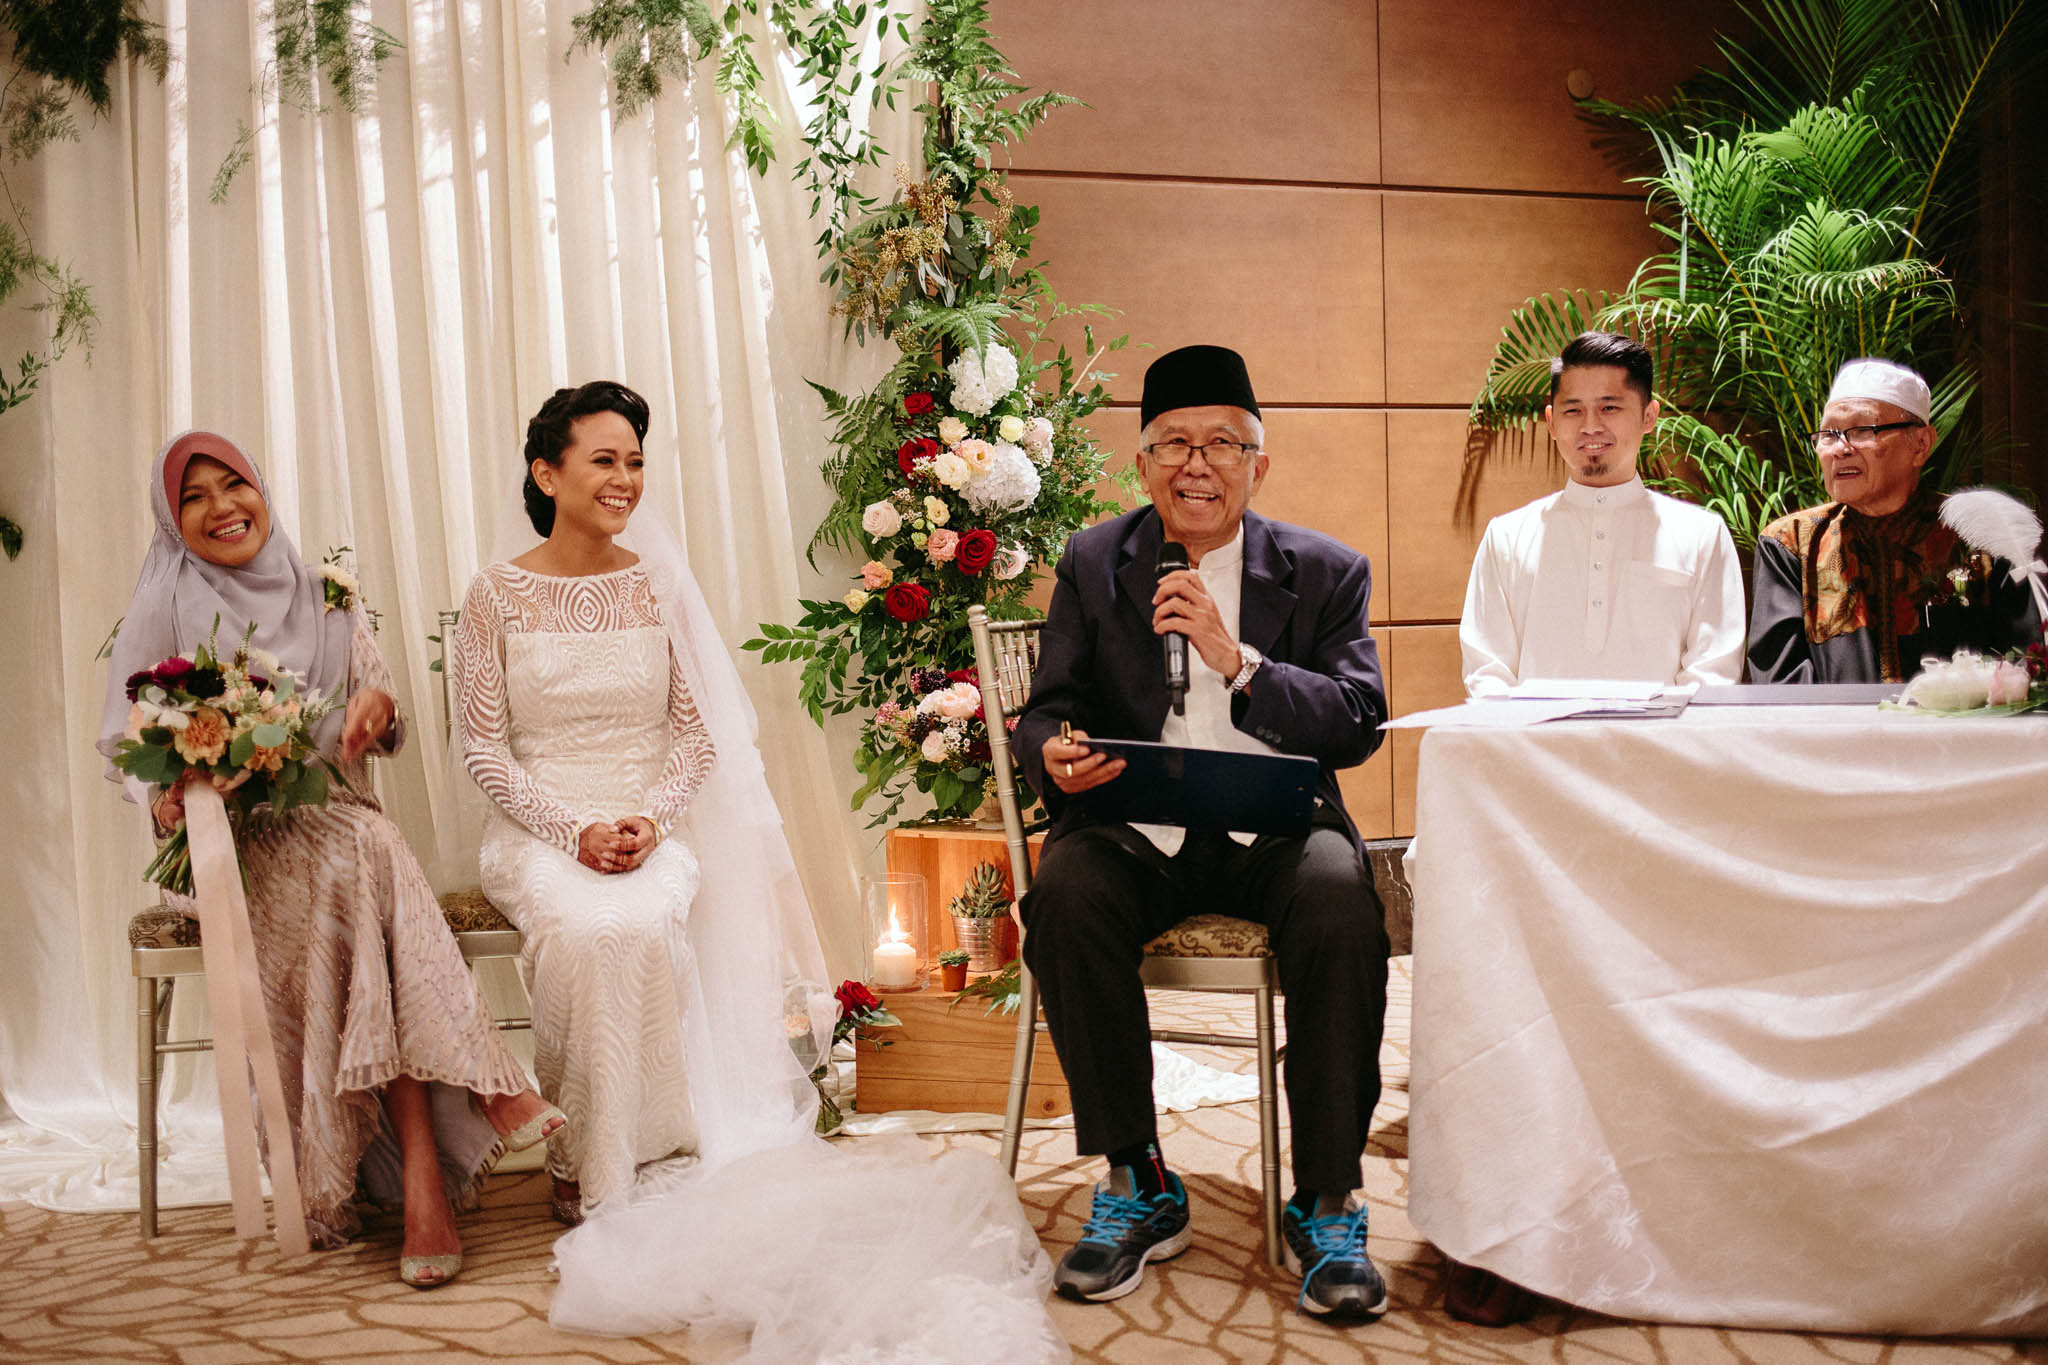 singapore-wedding-photographer-wedding-hafiana-teck-kuan-046.jpg